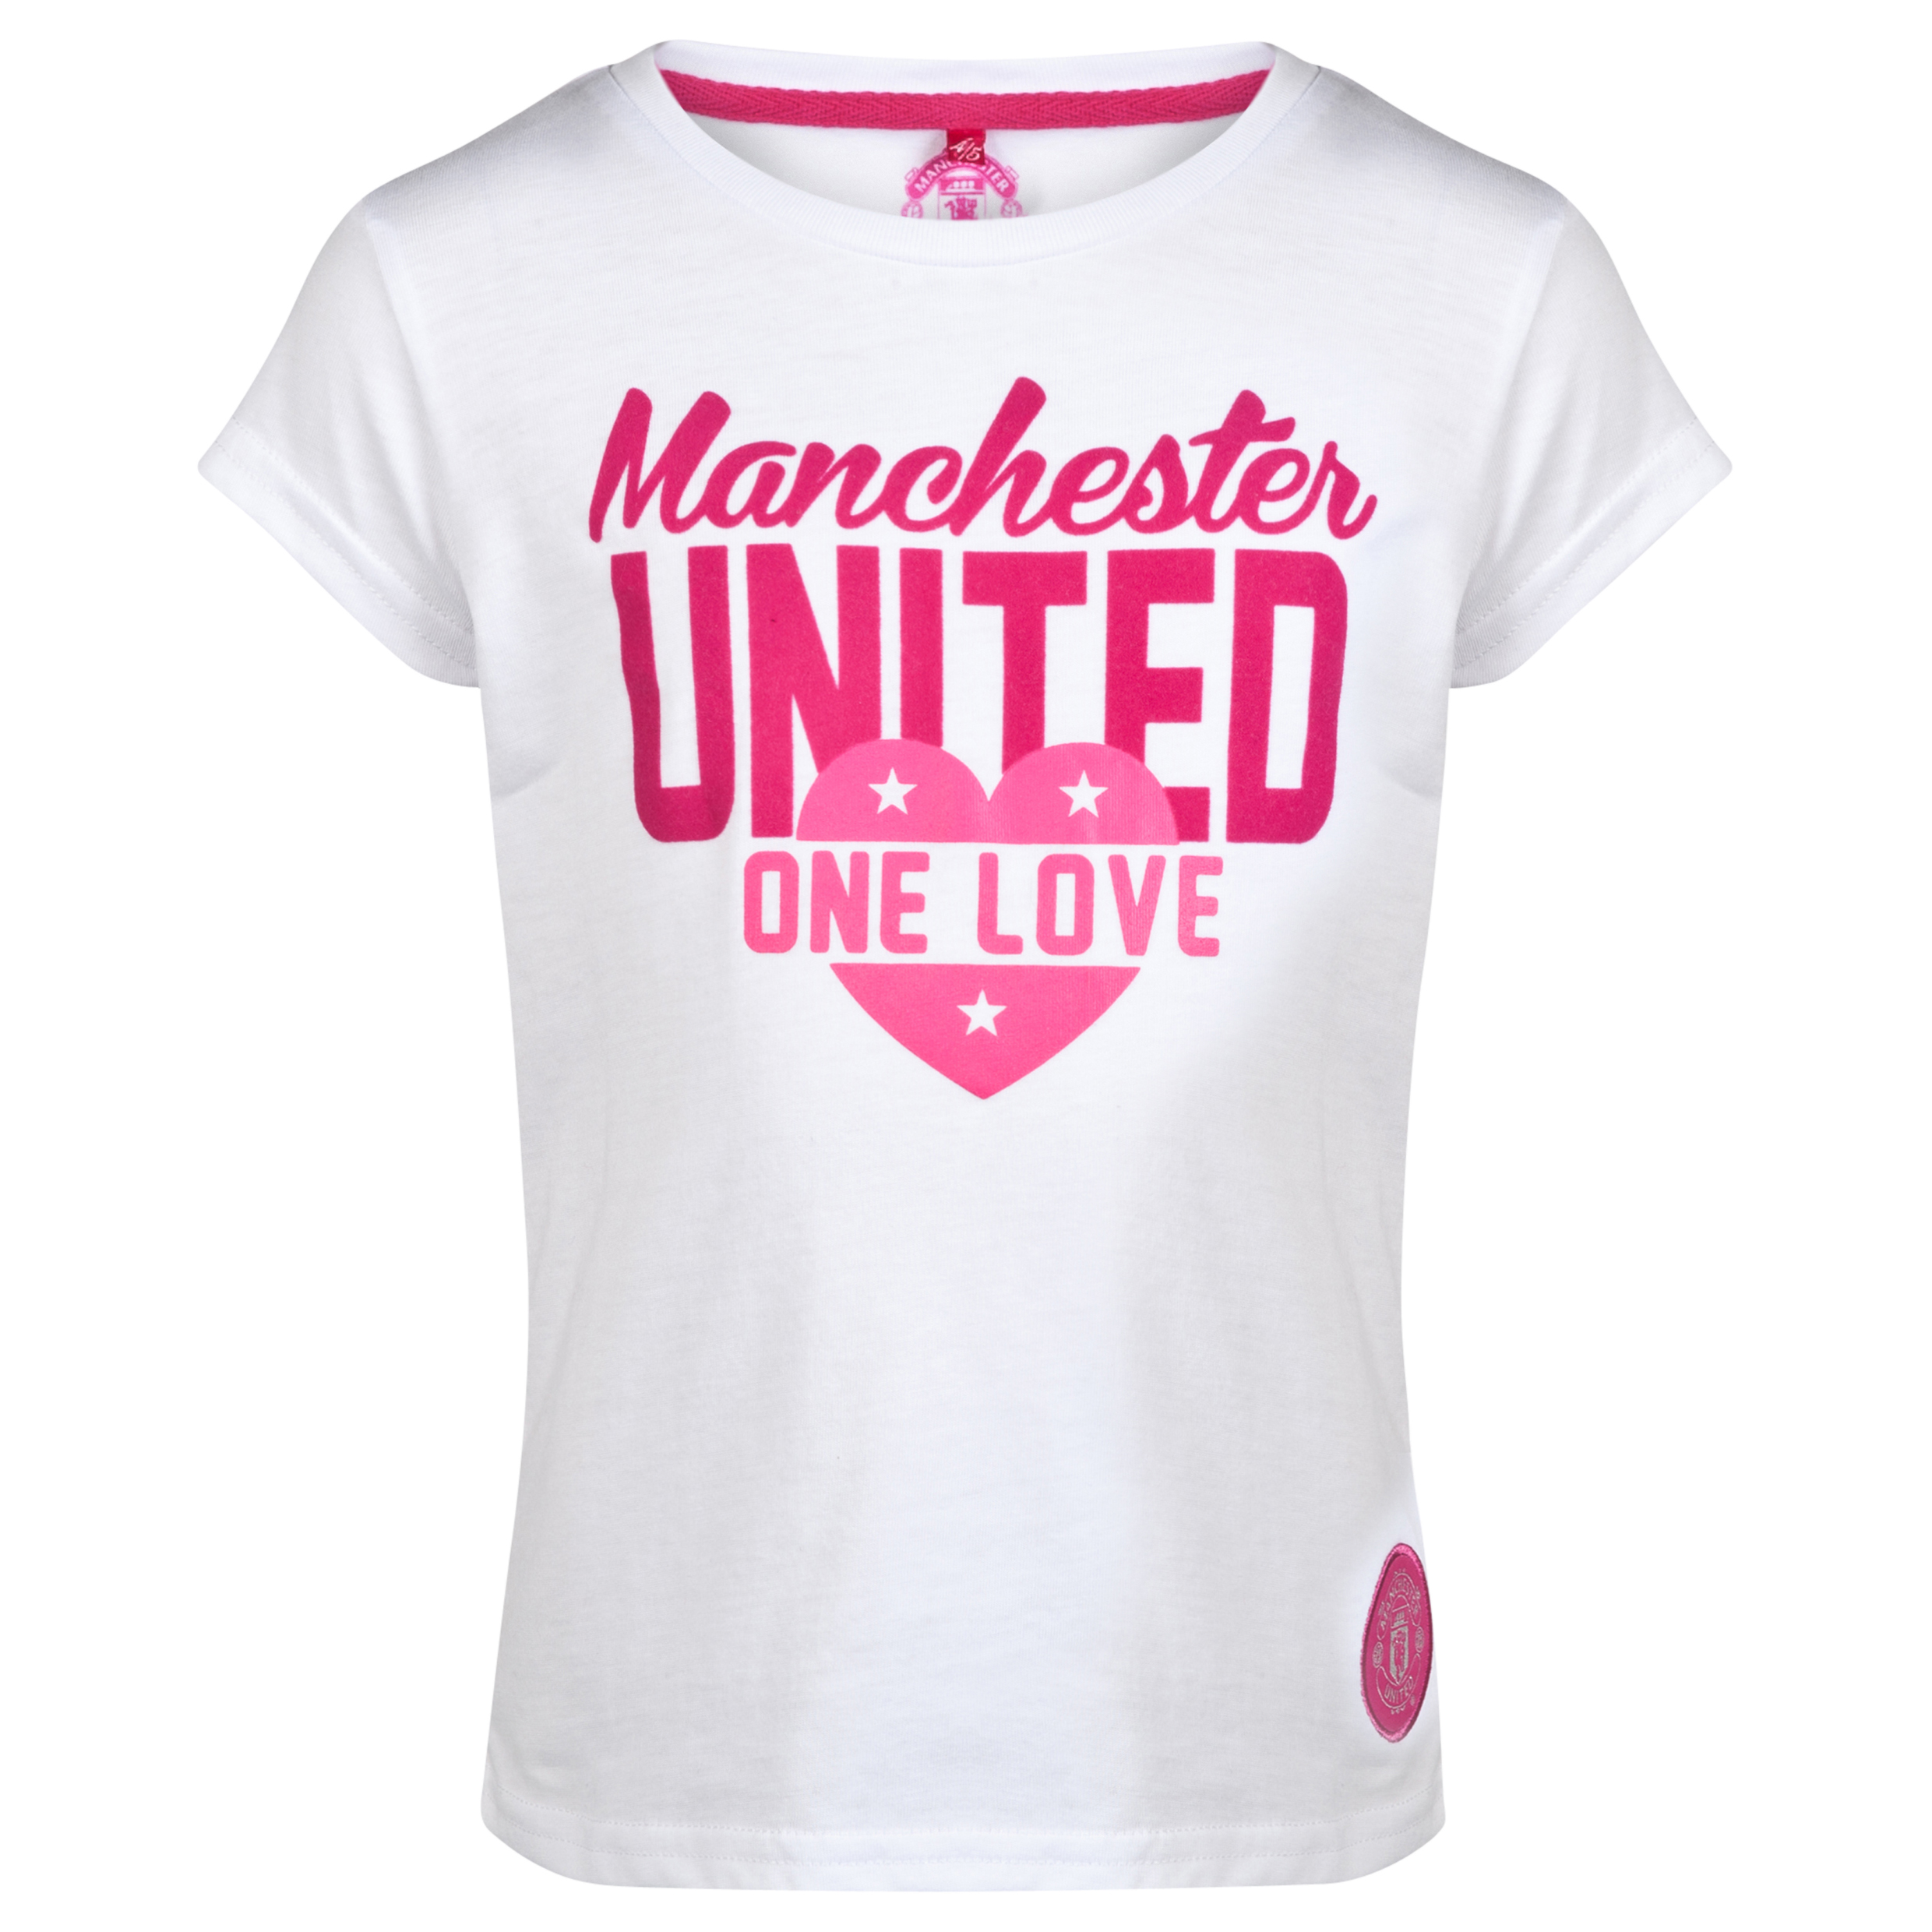 Manchester United Graphic T-Shirt - Girls White